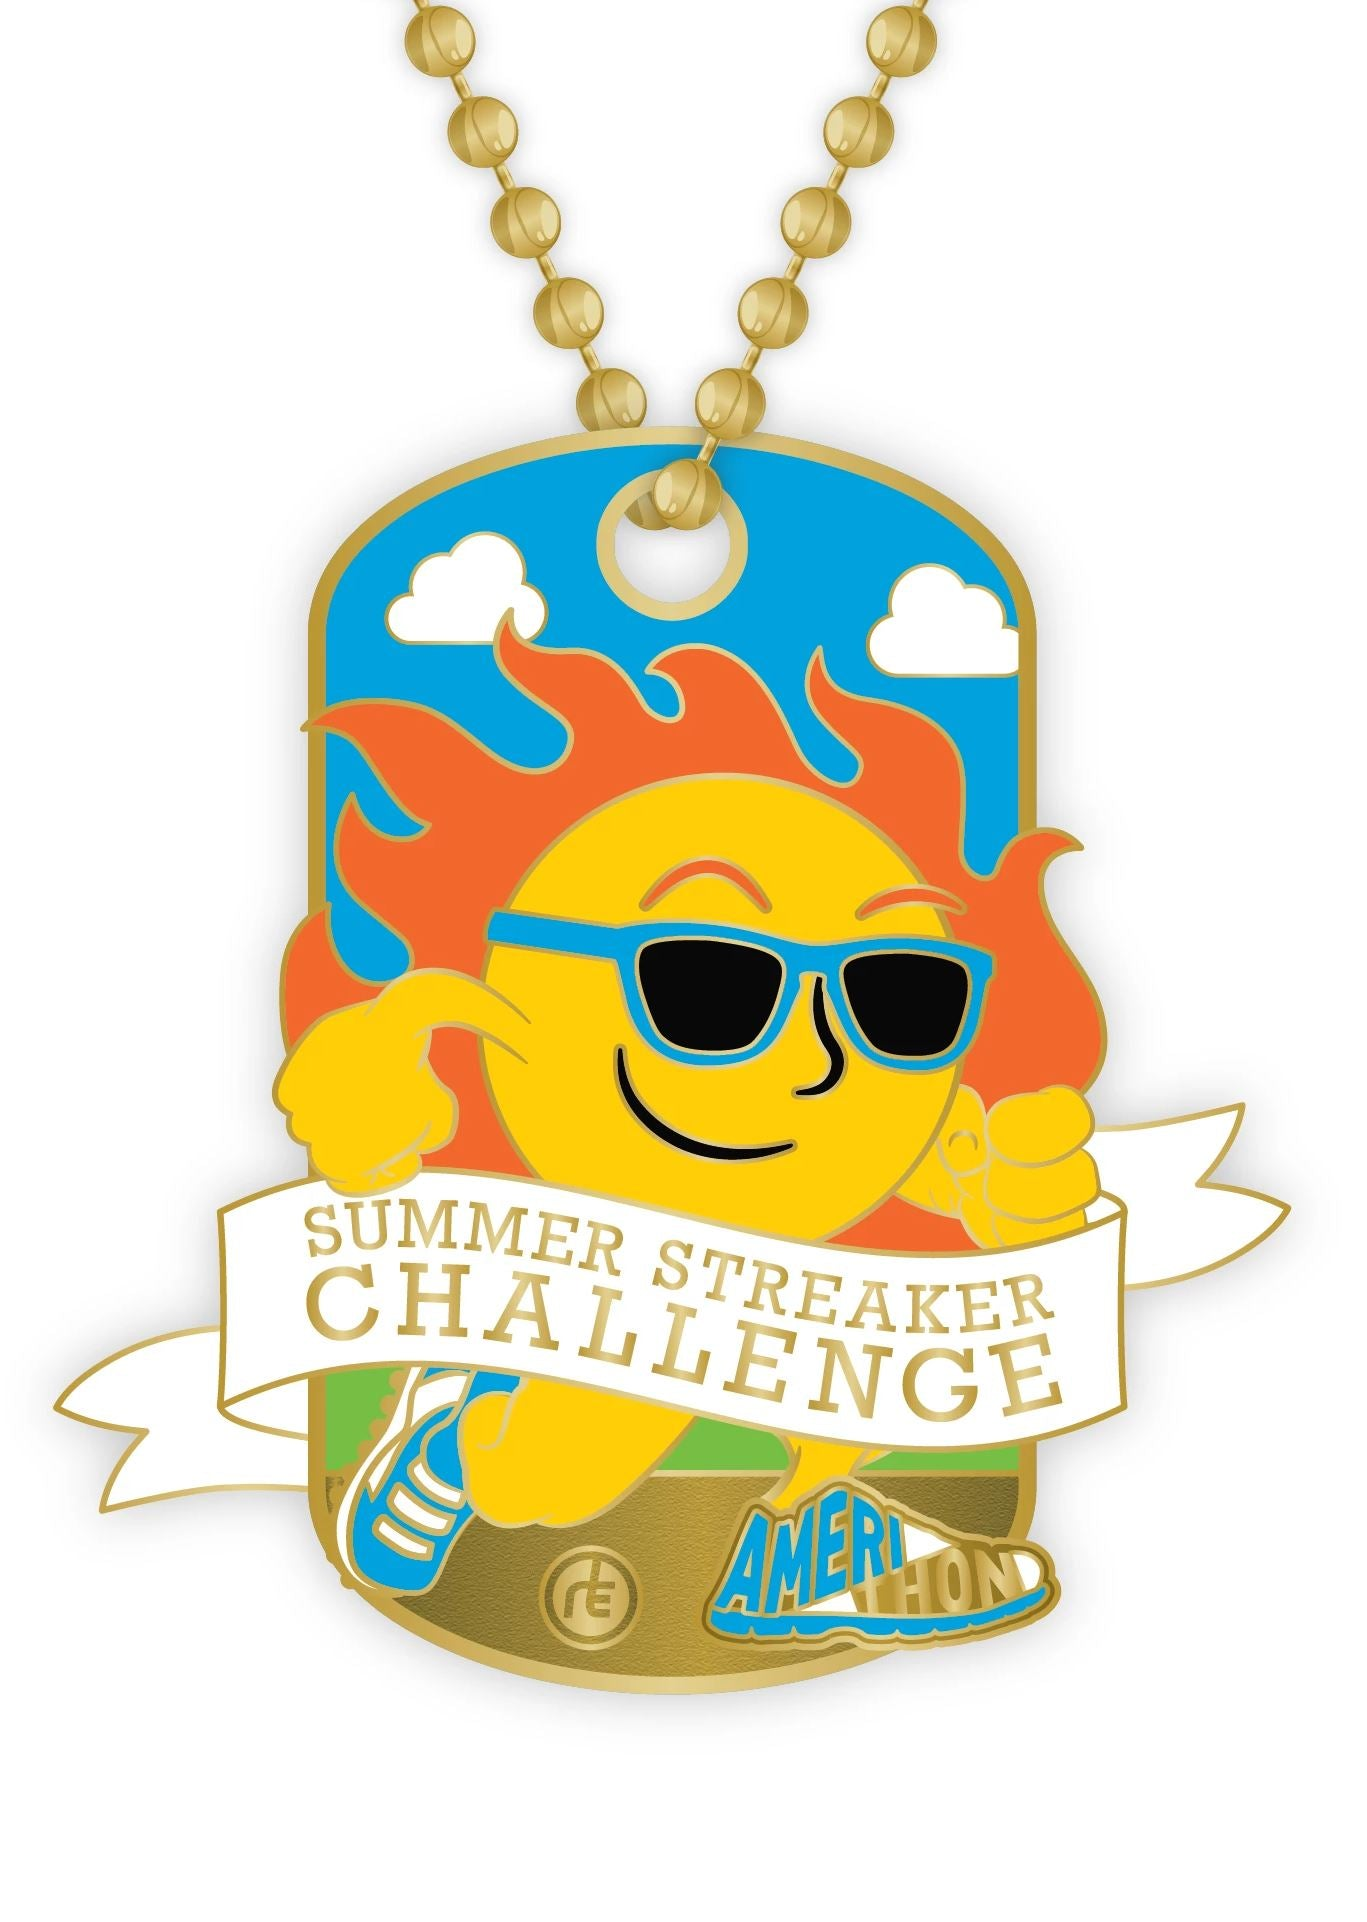 2020 Summer Streaker Dog Tag Medals Run The Edge Store